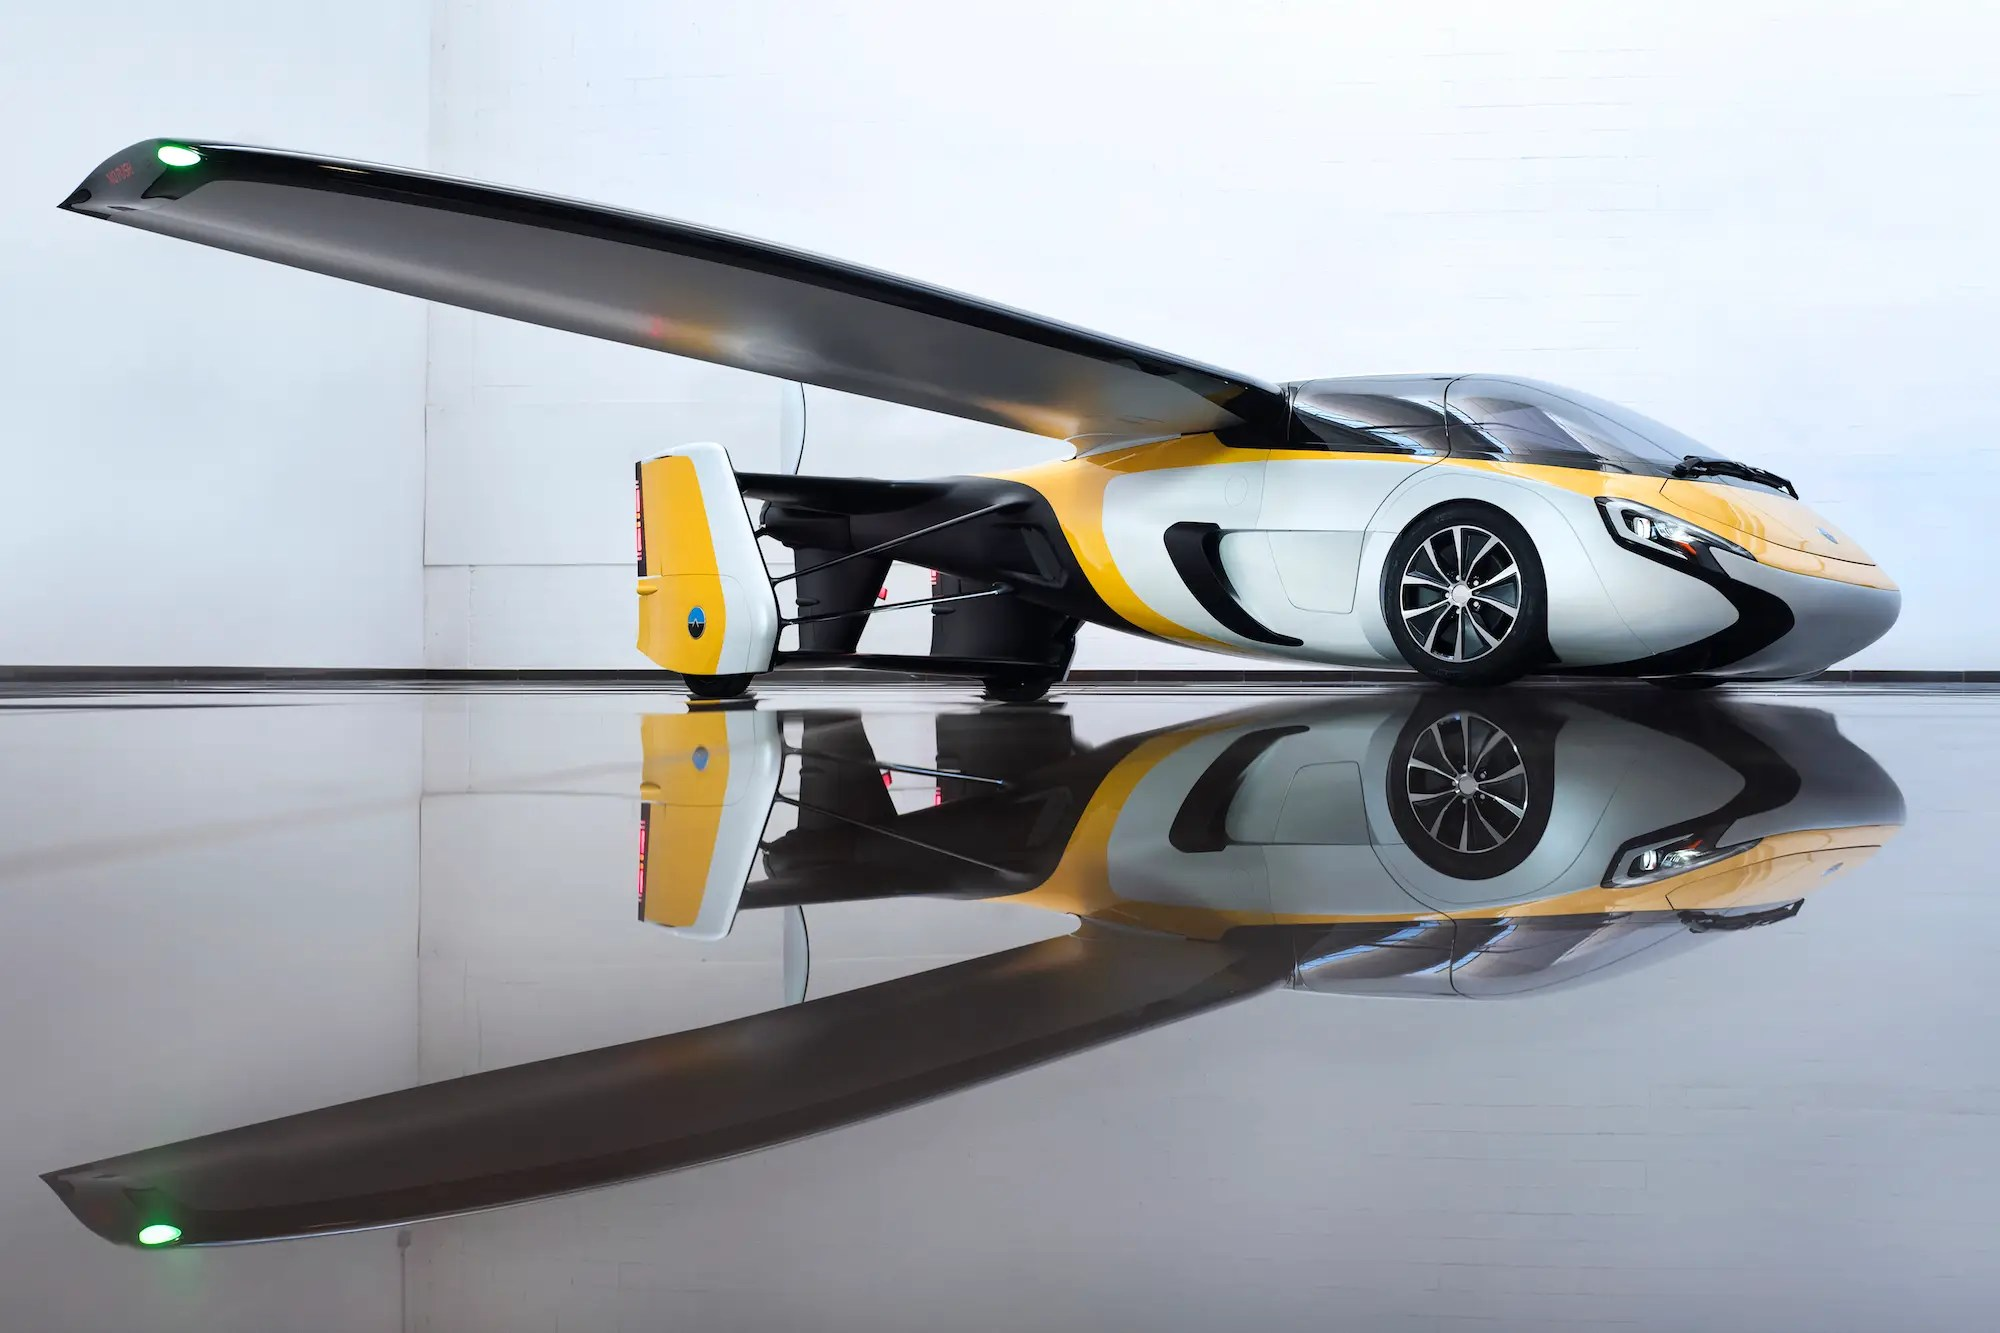 The vehicle is certified to operate in Europe, but AeroMobil plans to eventually release it in the US, AeroMobil CTO Douglas MacAndrew told Business Insider. Once it's cleared to operate in the US, AeroMobil will look to introduce it in China as well.